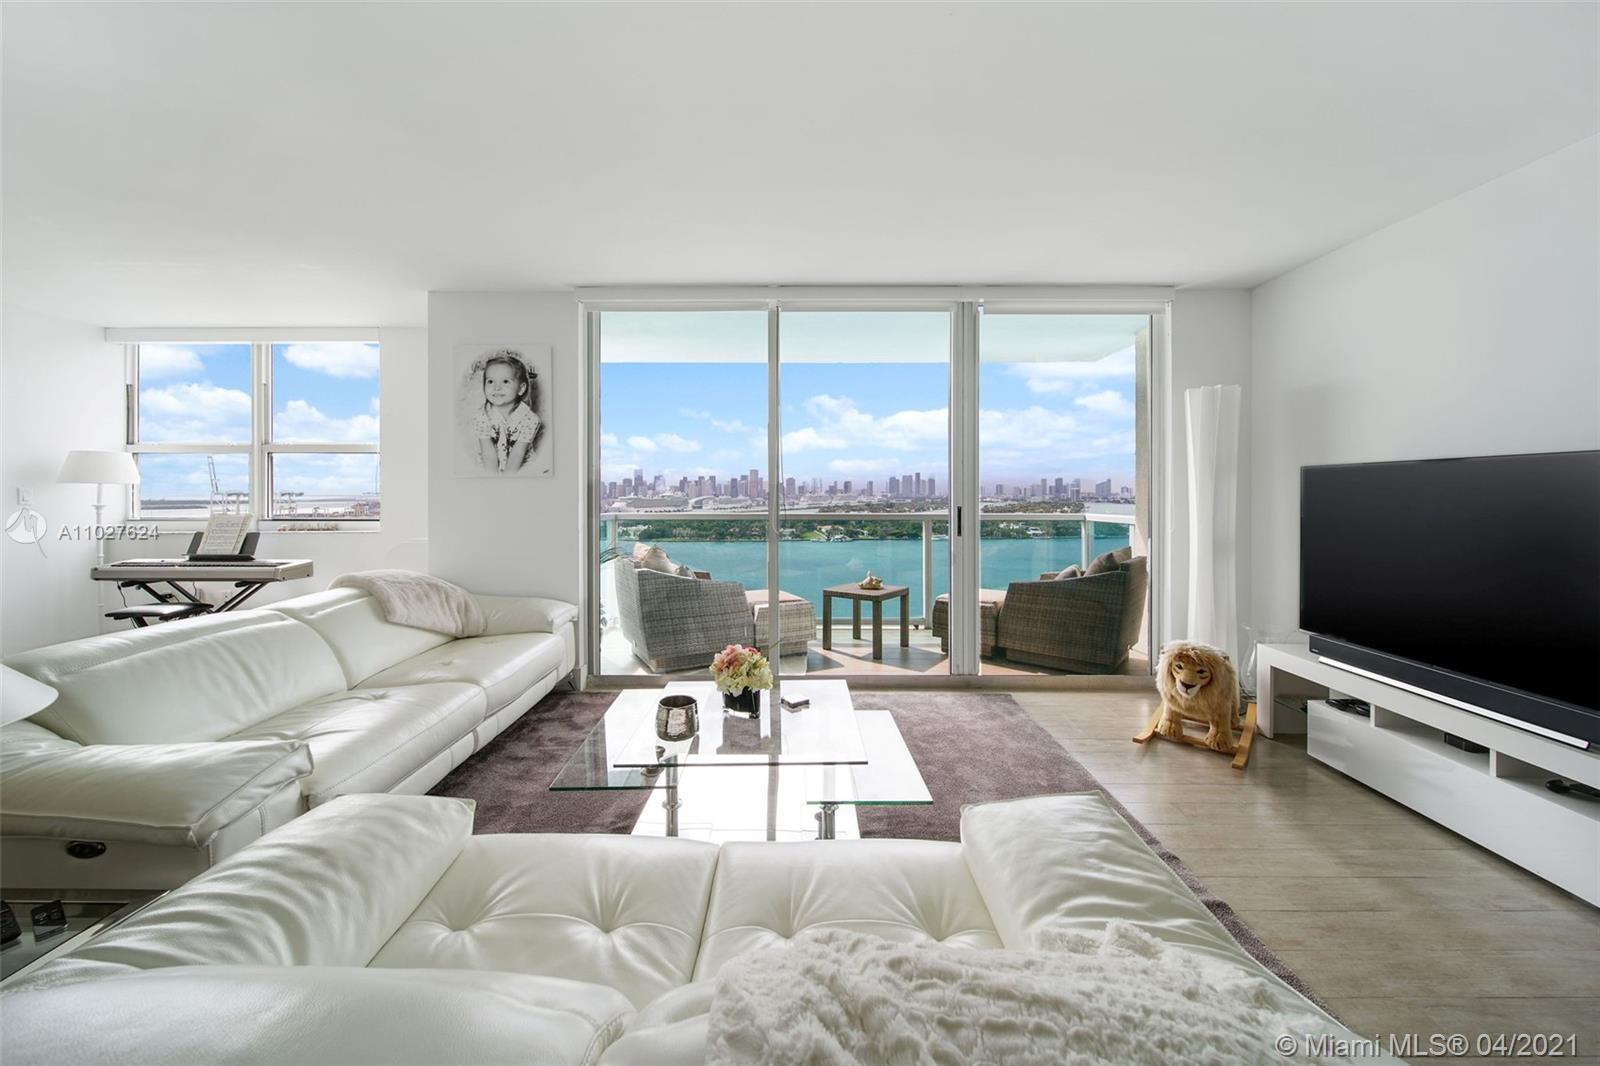 Enjoy breathtaking direct bay views of the Downtown Miami Skyline and amazing sunsets from this redesigned residence at The Floridian.  This fully remodeled 3 bedroom layout was converted to a large 2/2 with over 1400SqFt.  Delight in a larger living space with lots of windows.  The kitchen has also been reconfigured allowing for a more open cooking space with a separate dining area for entertaining.  The main bedroom is features a walk-in closet and modern en-suite bath with double vanity.  Bidet too.  The 2nd bedroom also features and en-suite bath and tub.  Custom lighting, in unit, full size washer and dryer and 2 parking spots in the garage are some other highlights to this unit.  Live at The Floridian, a luxury bay front building with resort like amenities and an ideal location.